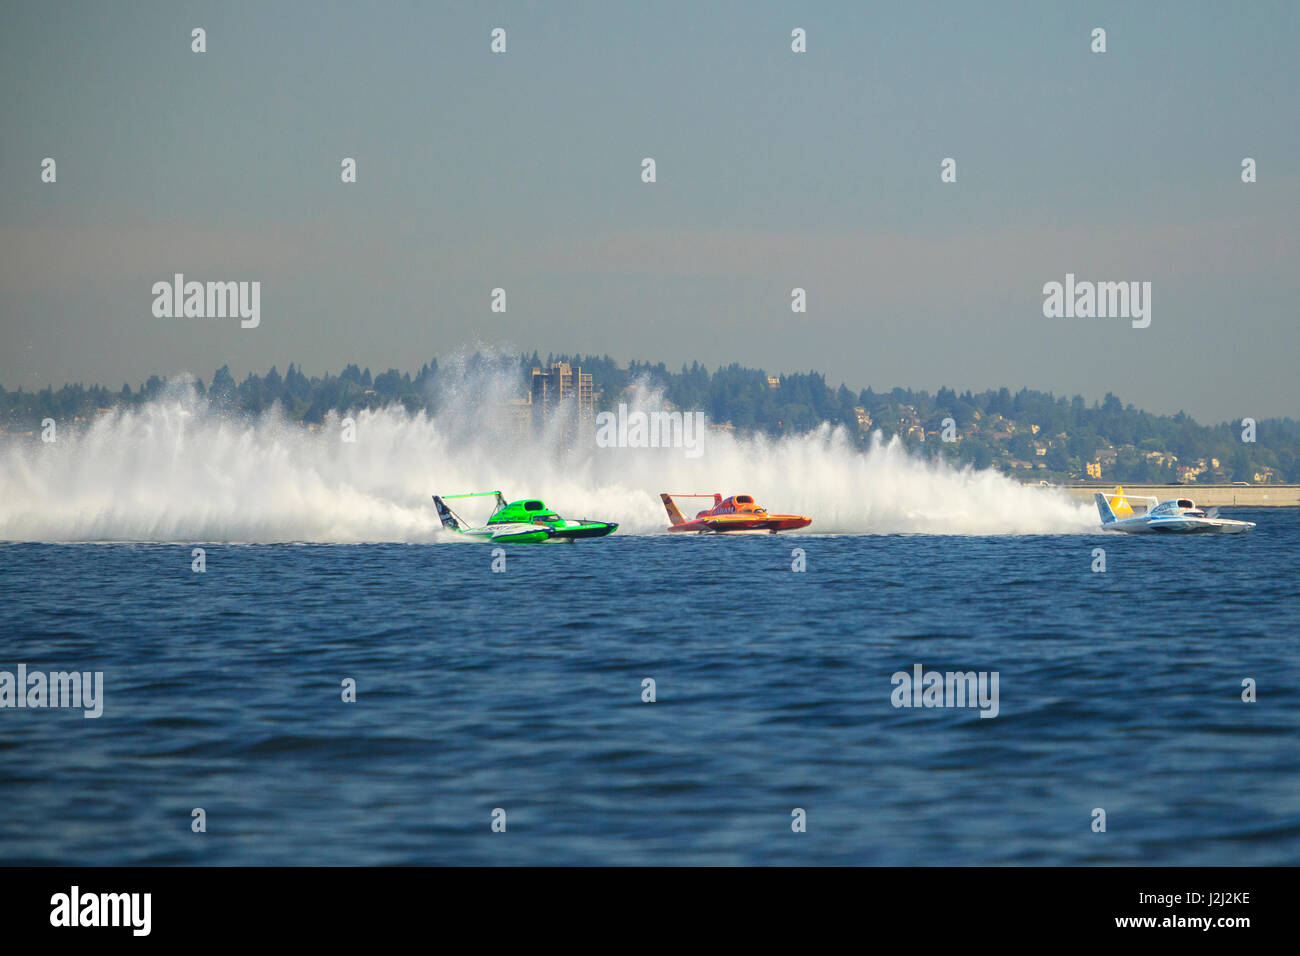 Unlimited Hydroplane Racing Stock Photos & Unlimited